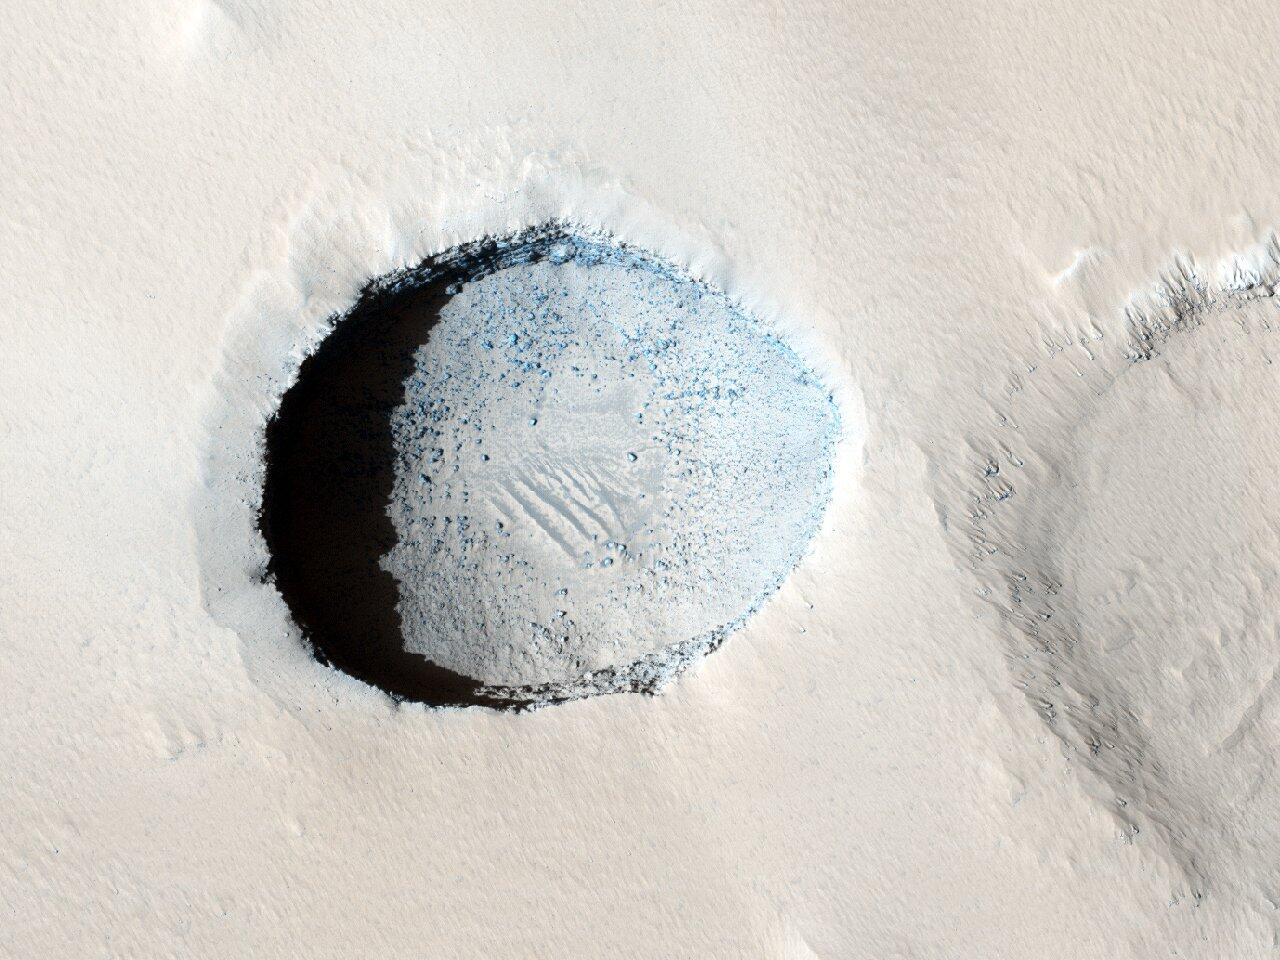 Scientists joke about Mars sarlacc pit